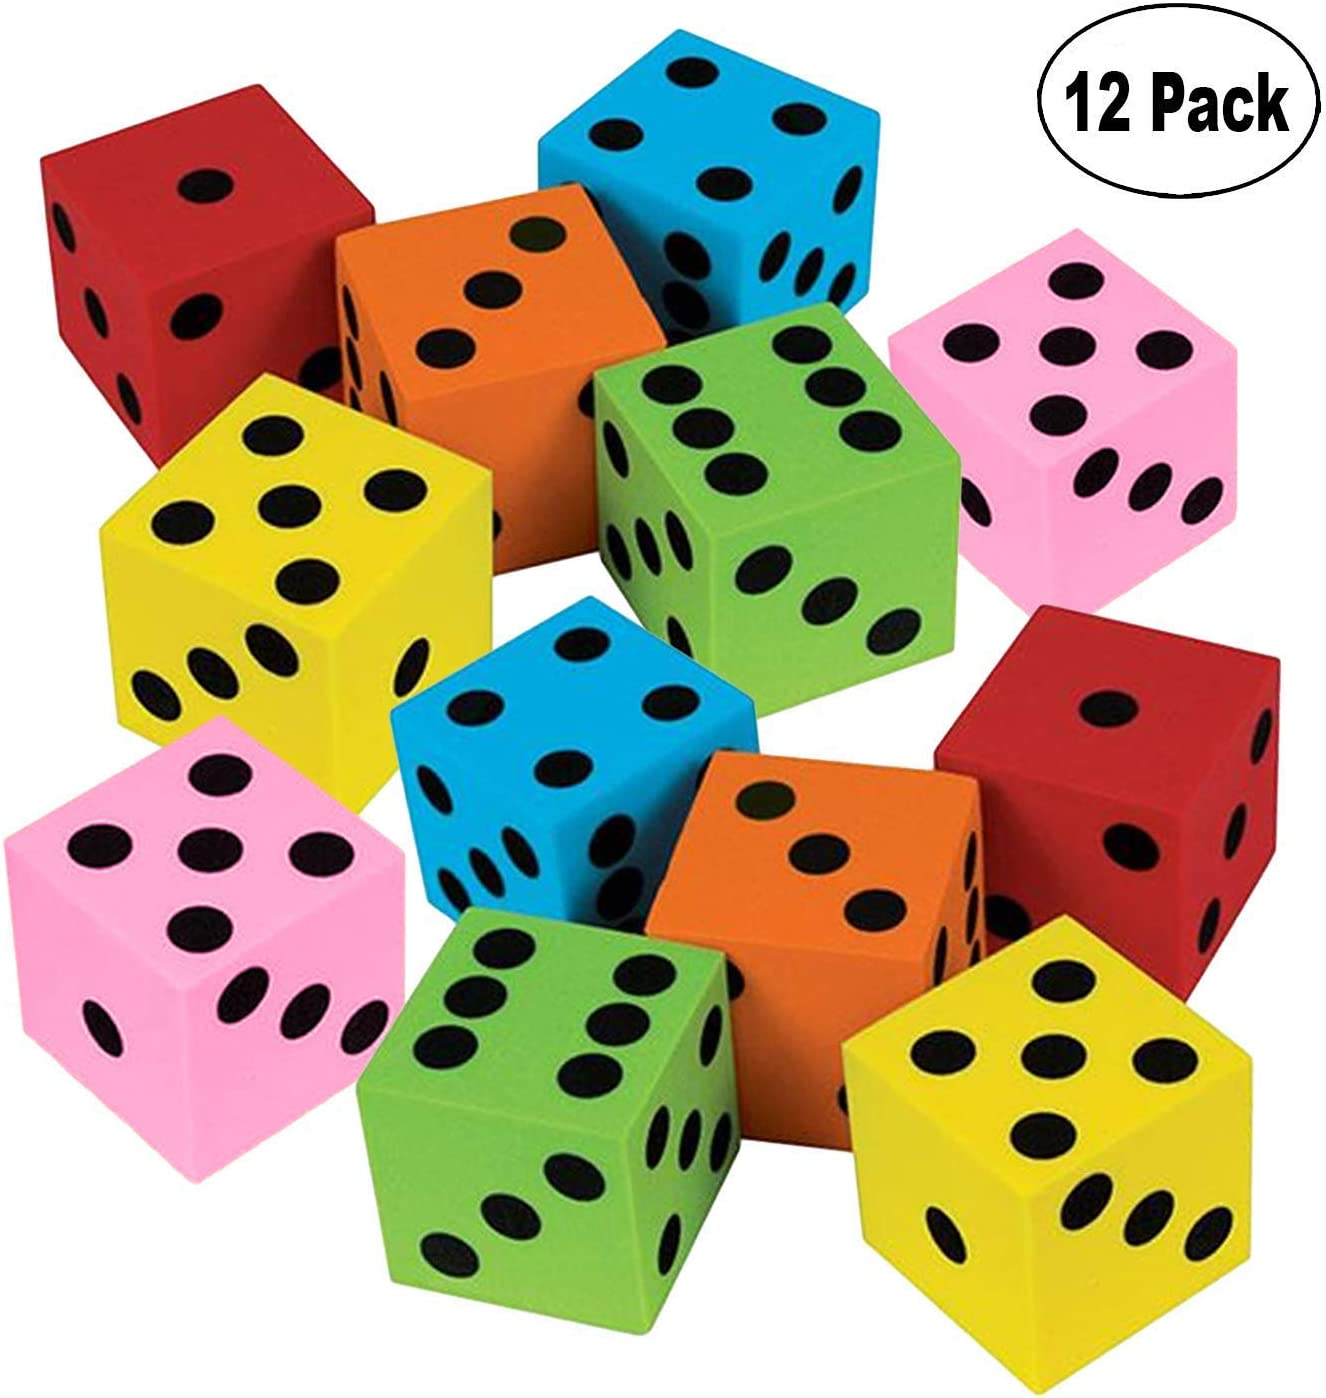 1.5 inch large colorful foam dice cubes with number dots Foam dice set of 36